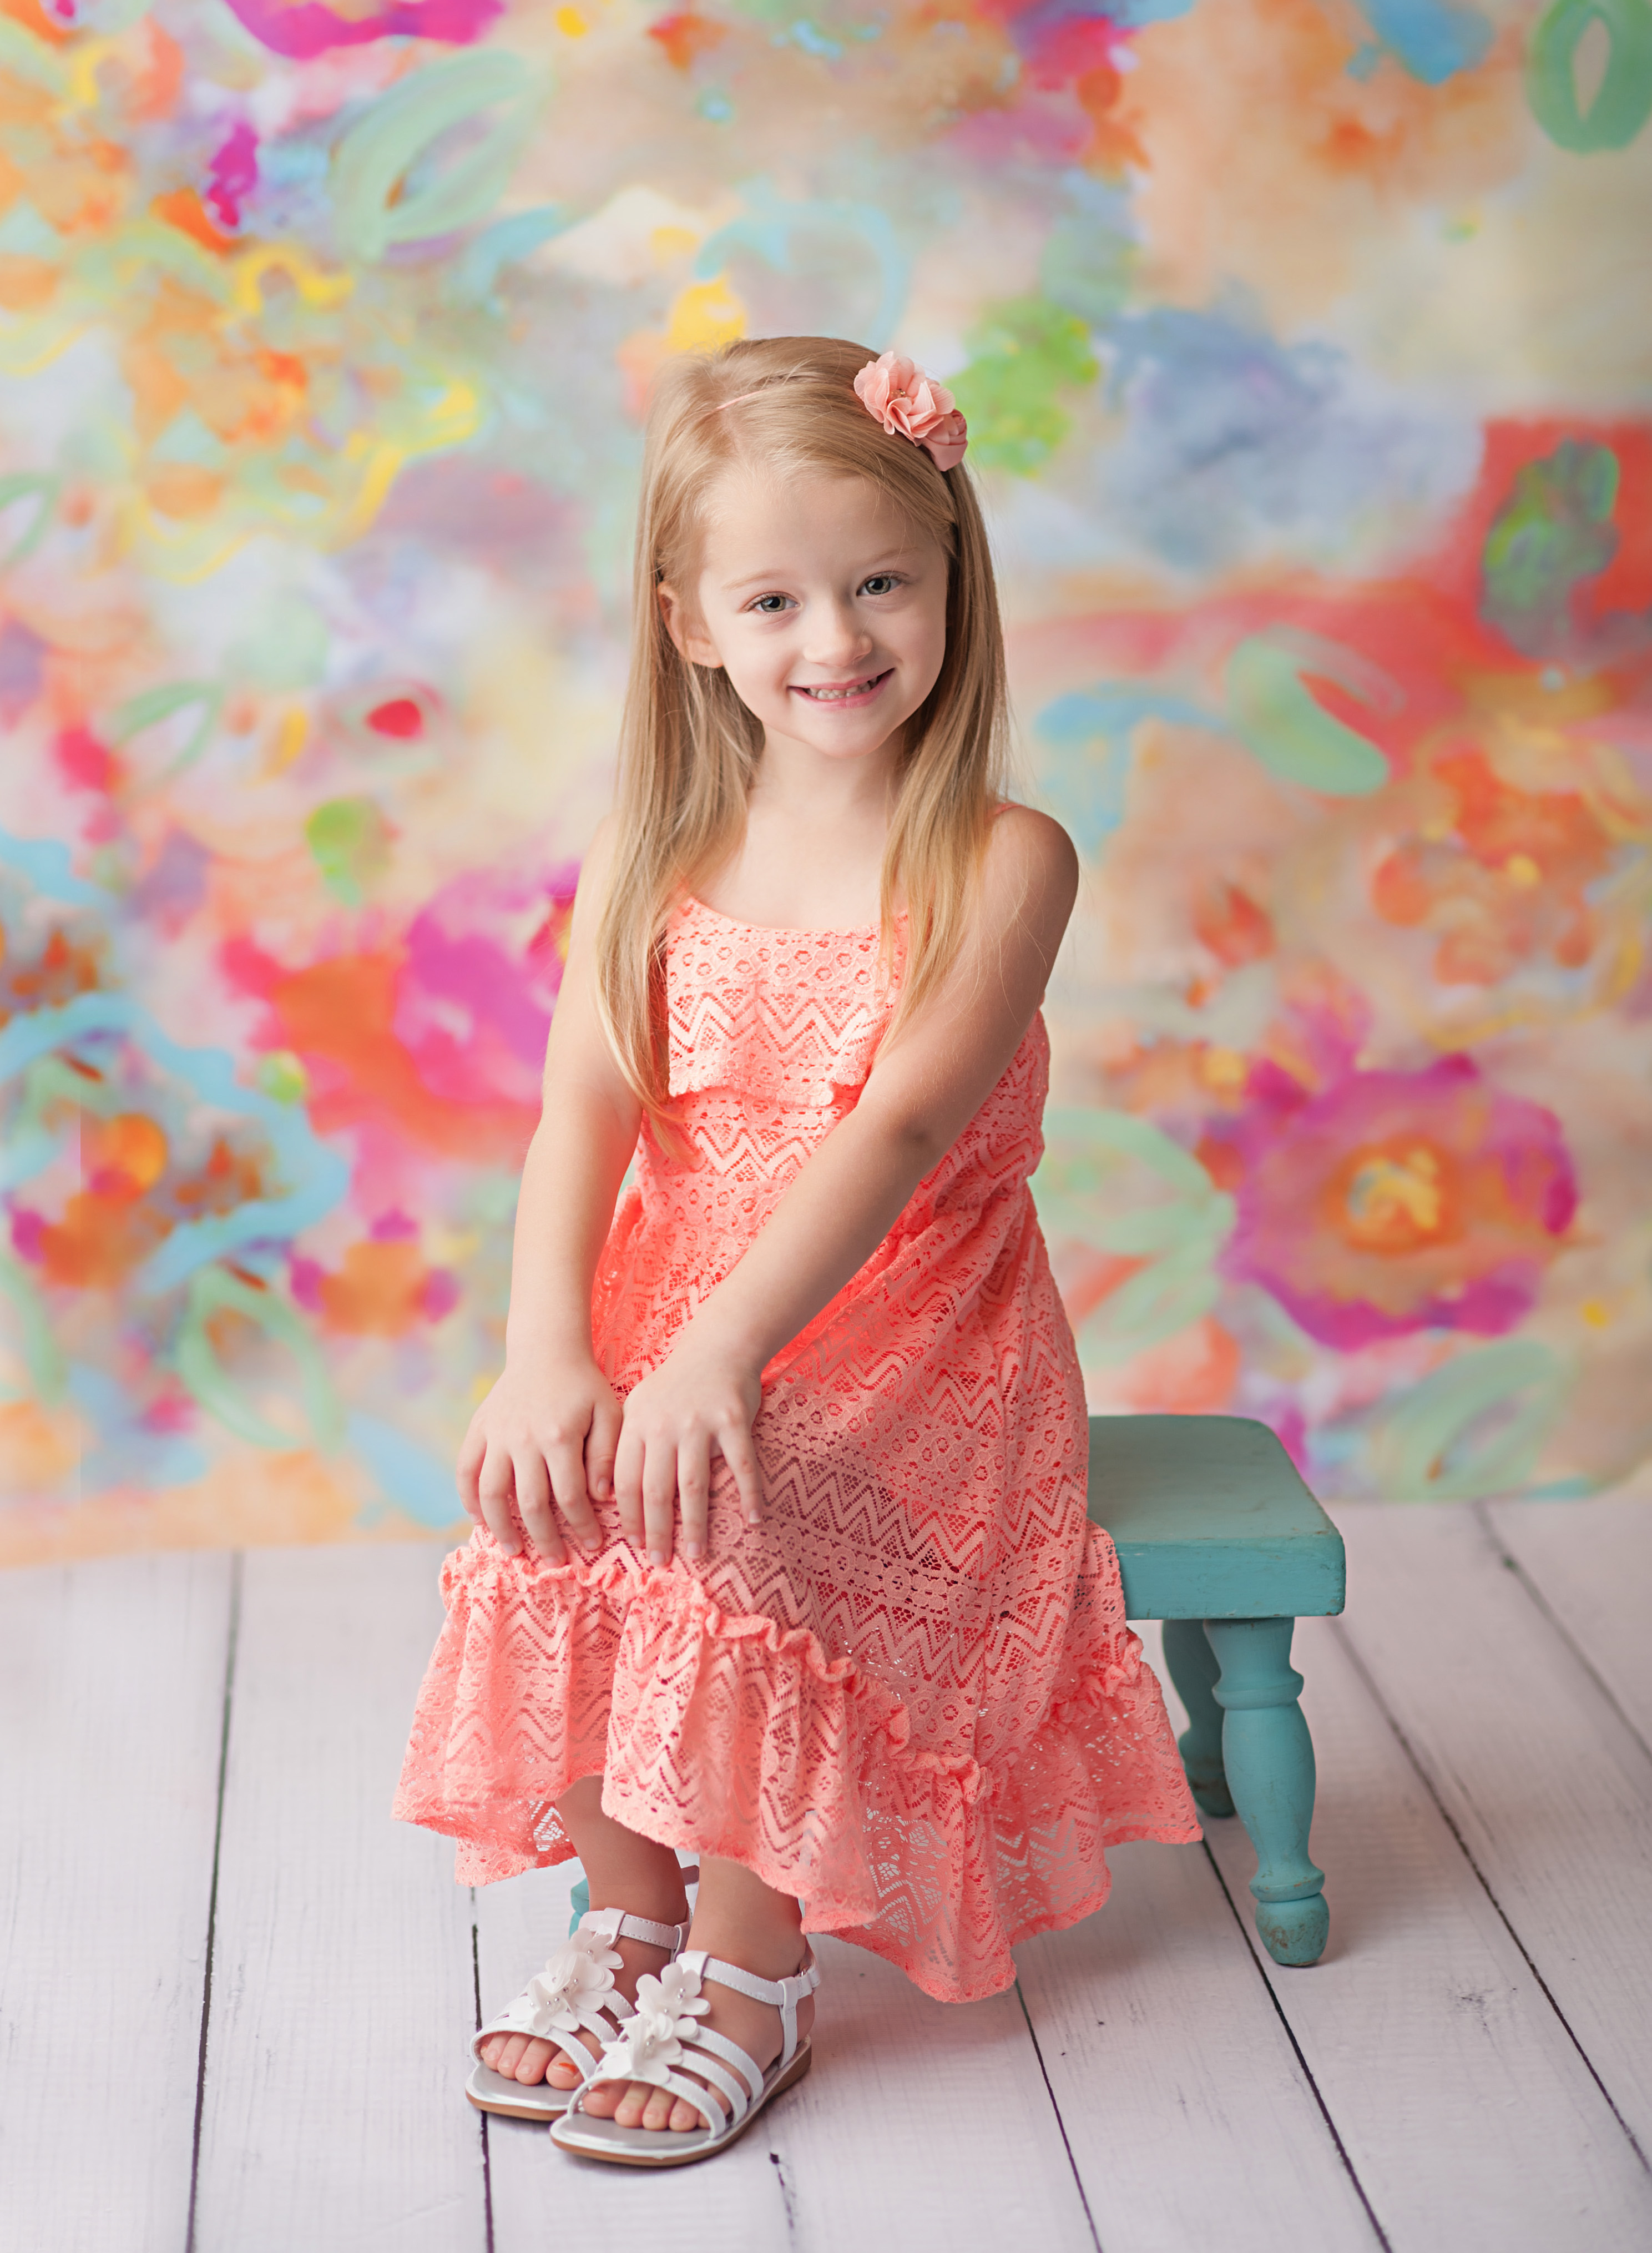 girl in dress on floral backdrop